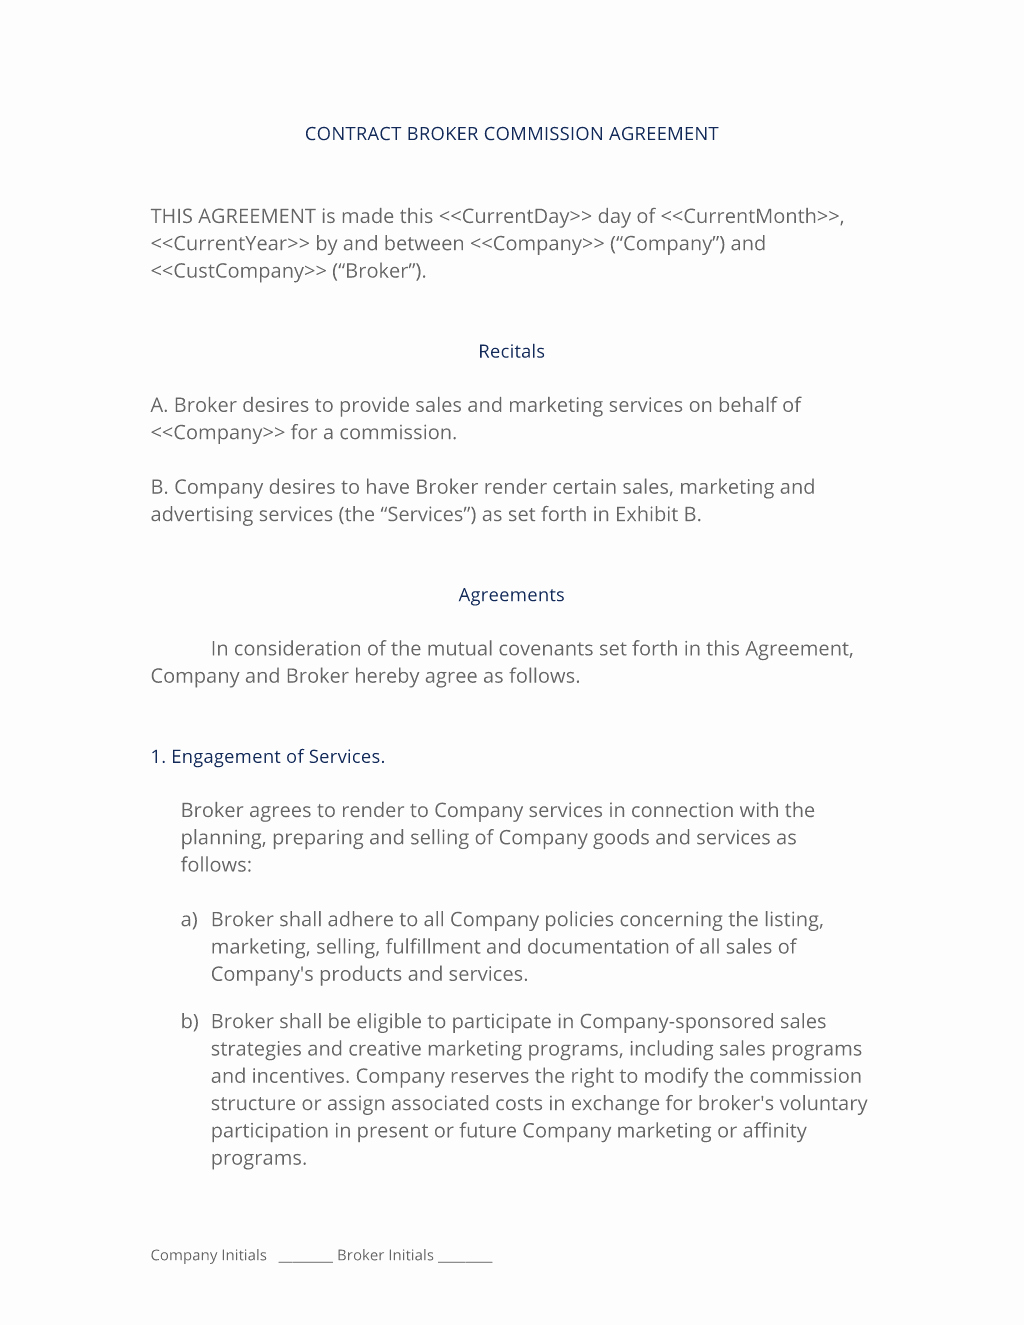 Commission Sales Agreement Template Elegant Broker Mission Sales Agreement 3 Easy Steps